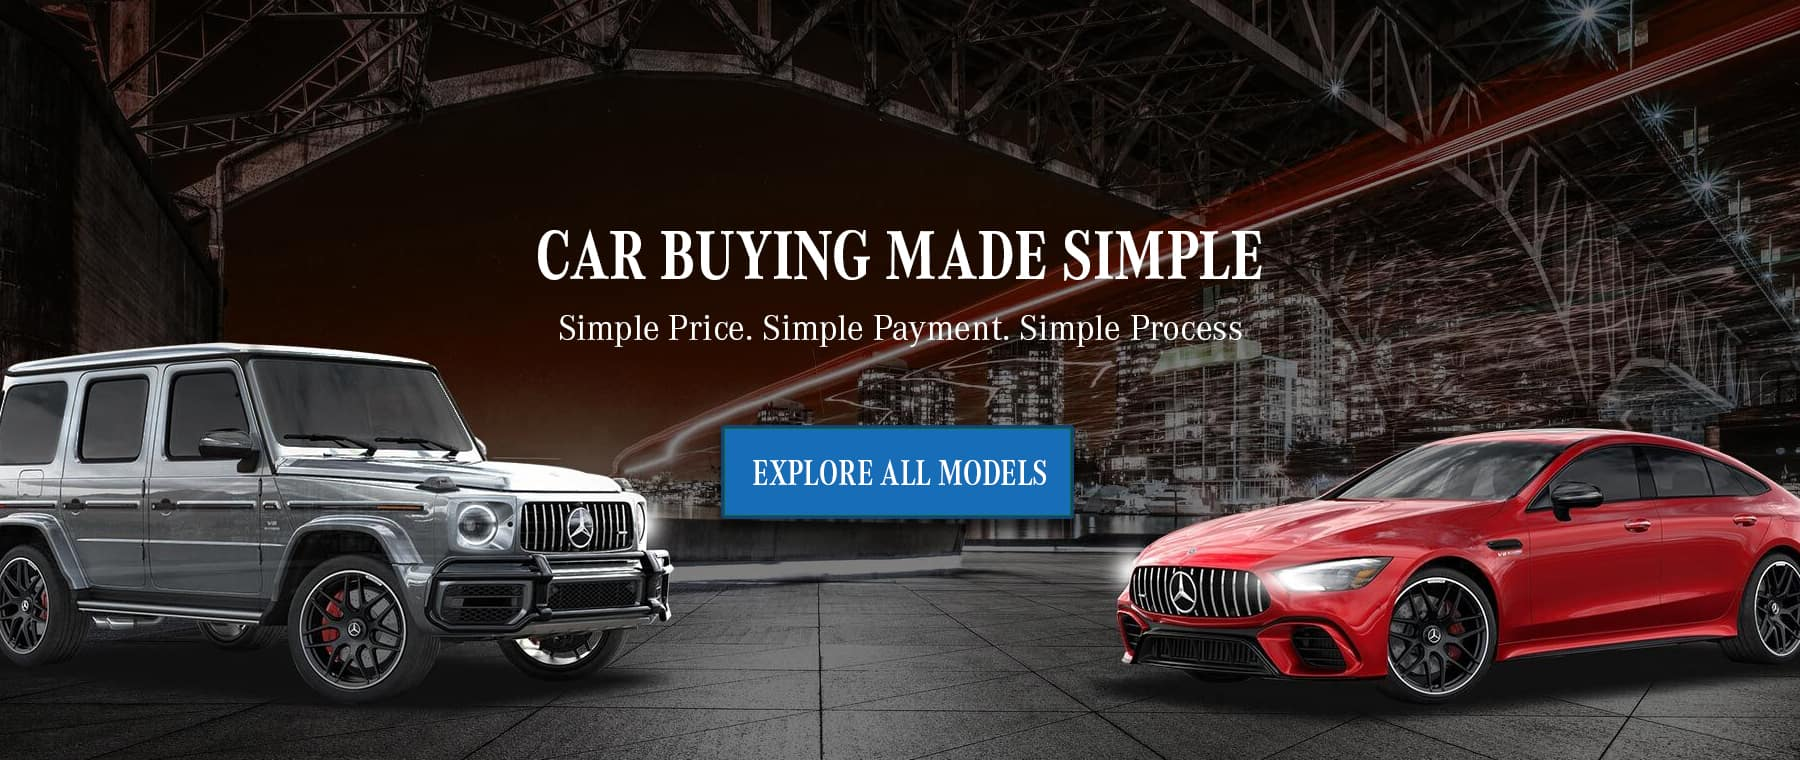 Mercedes-Benz of Fairfield | New and Used Mercedes-Benz